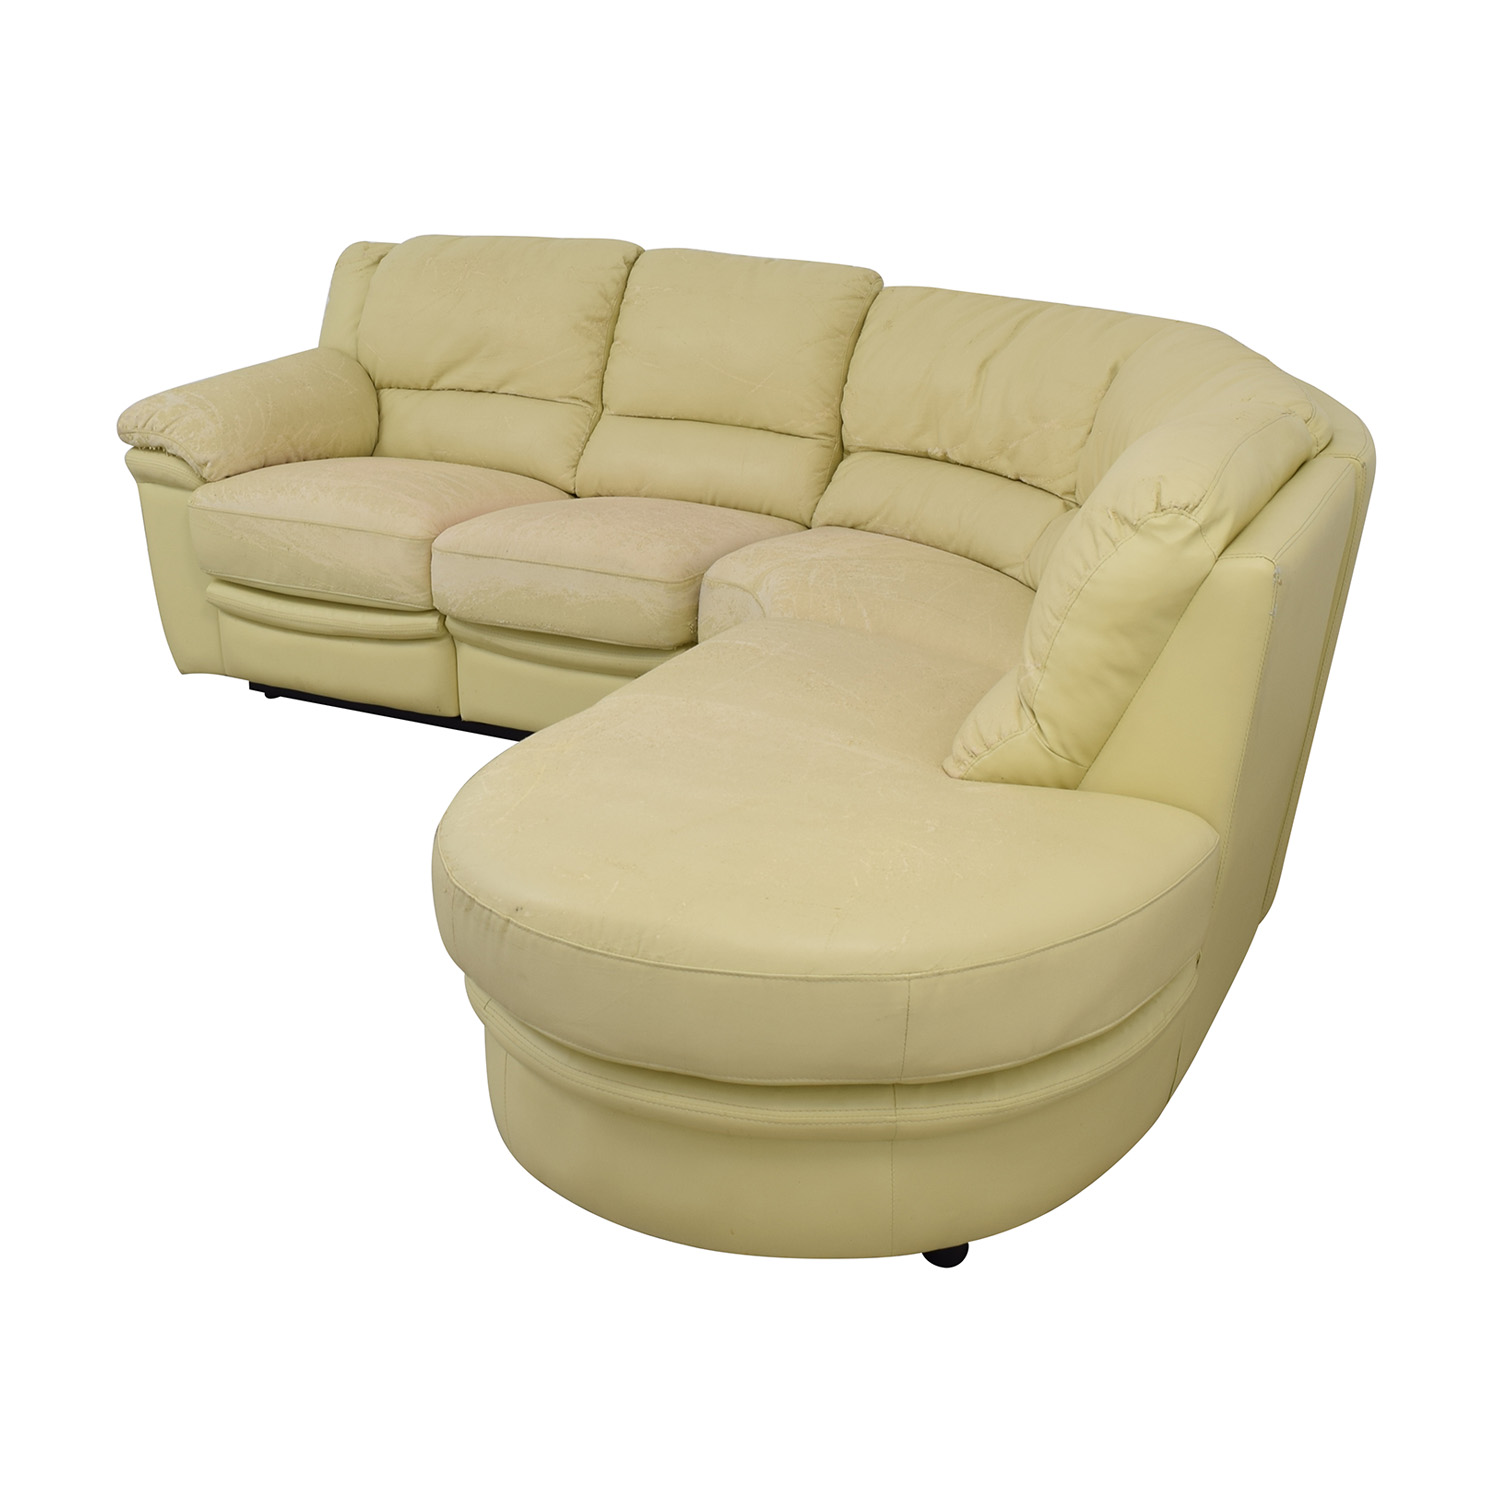 shop  Beige L-Shaped One Reclining Chair Sectional online